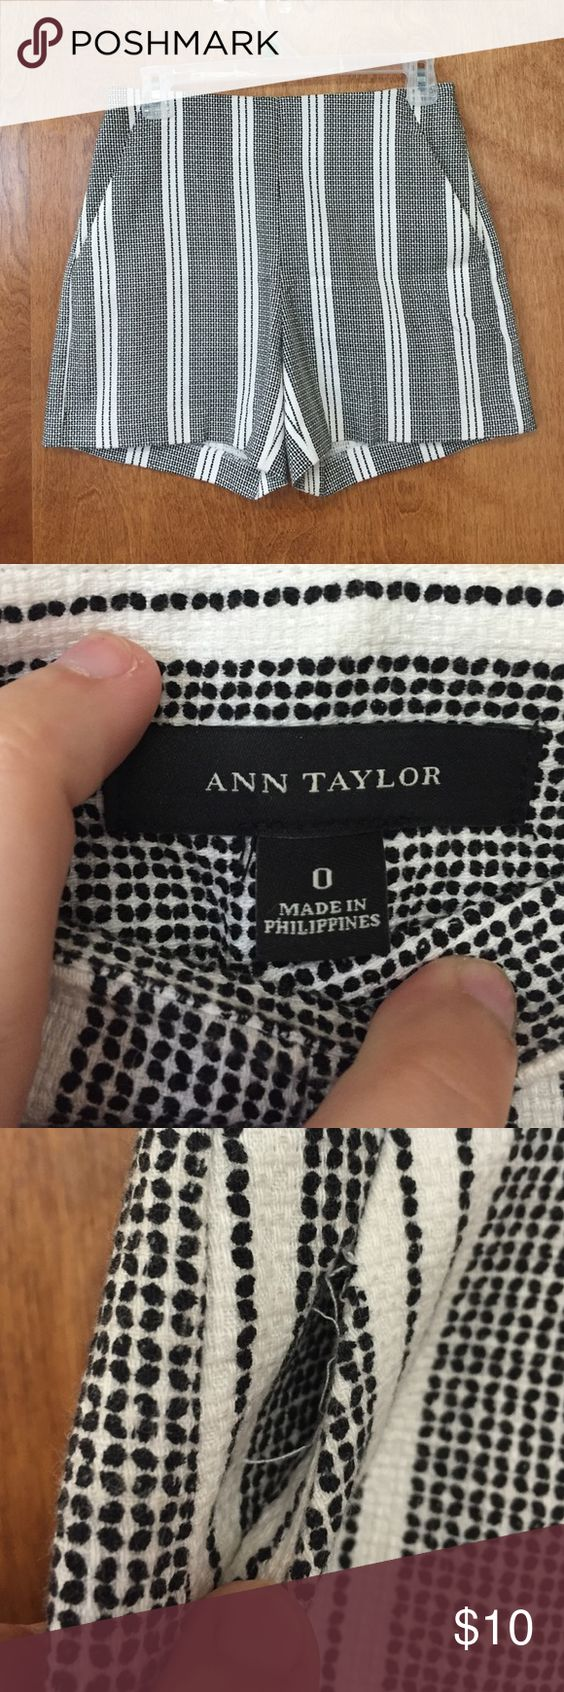 Ann Taylor shorts size 0 Gently used Ann Taylor shorts size 0. Has one real pocket and one faux pocket. Faux pocket is coming open (as documented) but could easily be repaired. No other issues. Open to offers. Ann Taylor Shorts